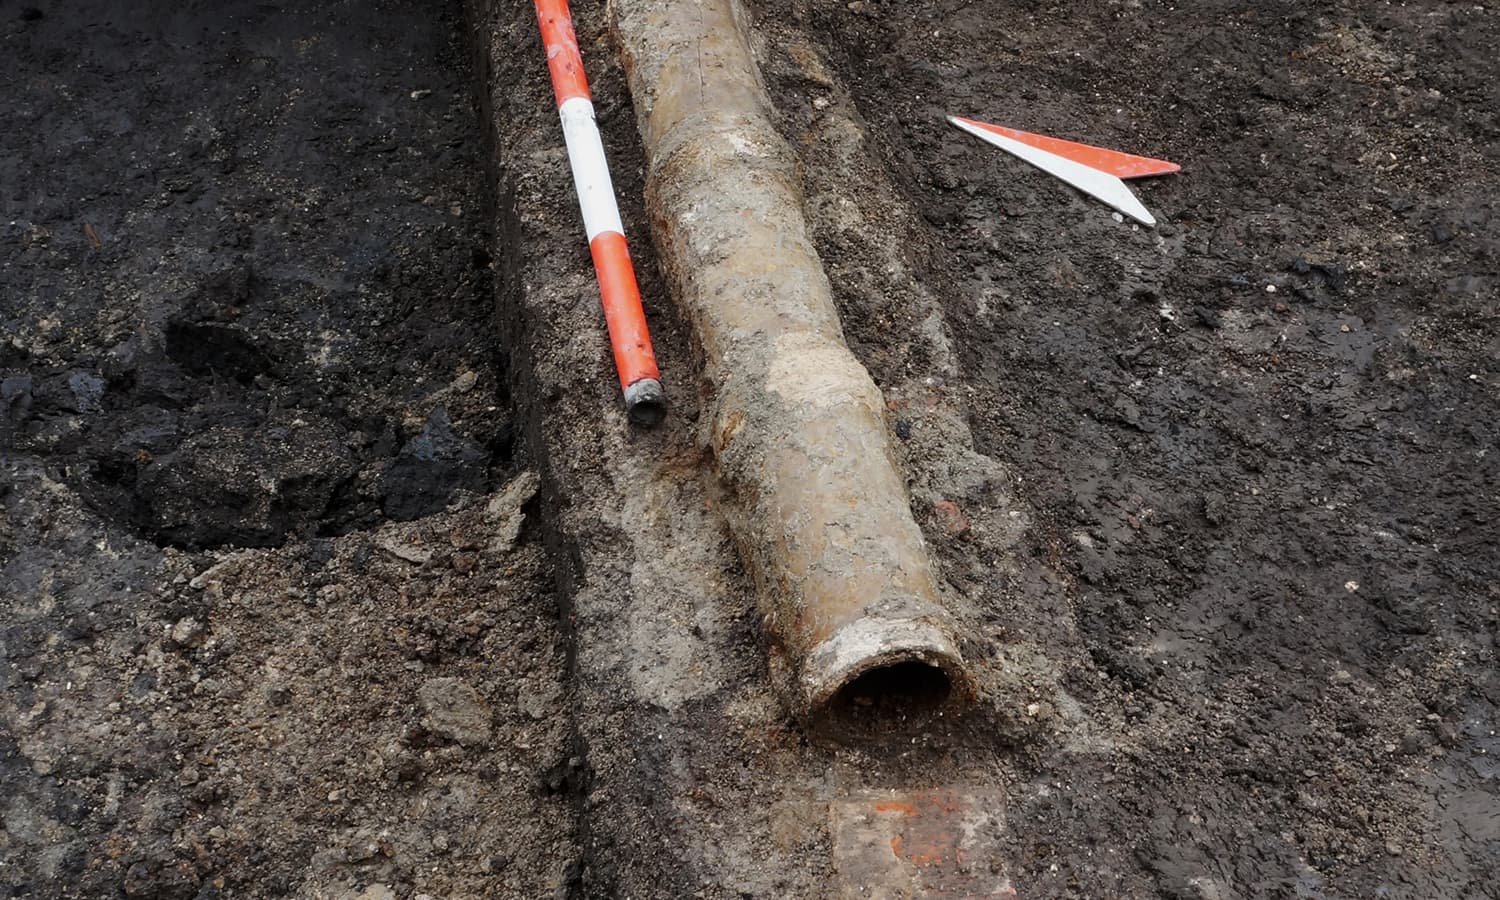 An intact pipe discovered was a part of one of the first urban plumbing systems in Romania. © 2014, Dr Florin Drasovean